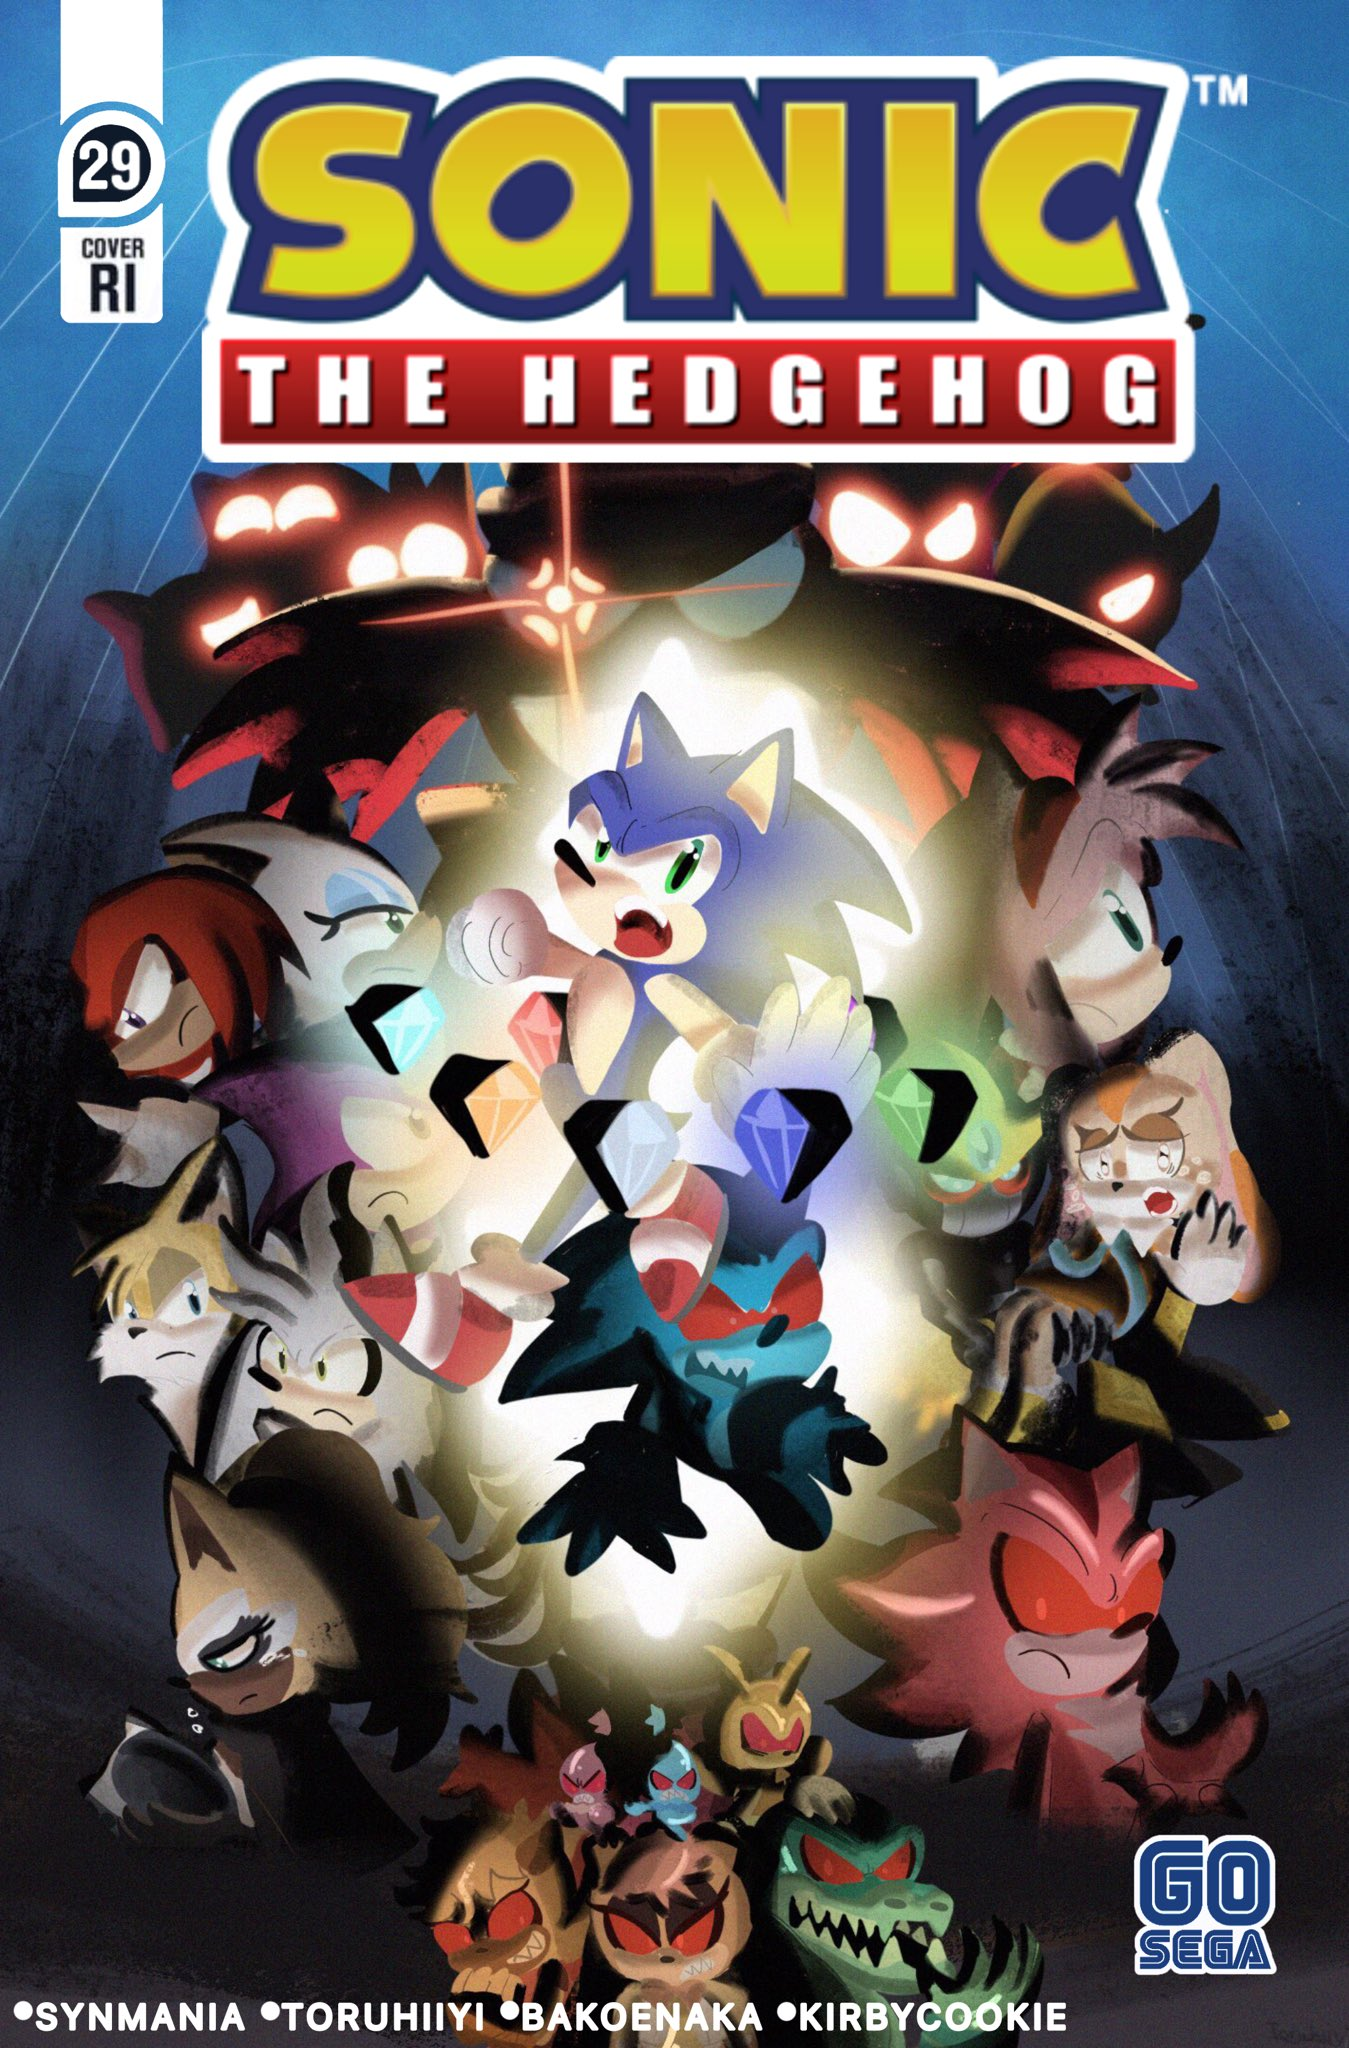 Idwsonicnews Idw Sonic Covers Previews On Twitter Sonic The Hedgehog 29 Cover Ri Done By Toruhiiyi Sonic Sonicthehedgehog Idwsonic